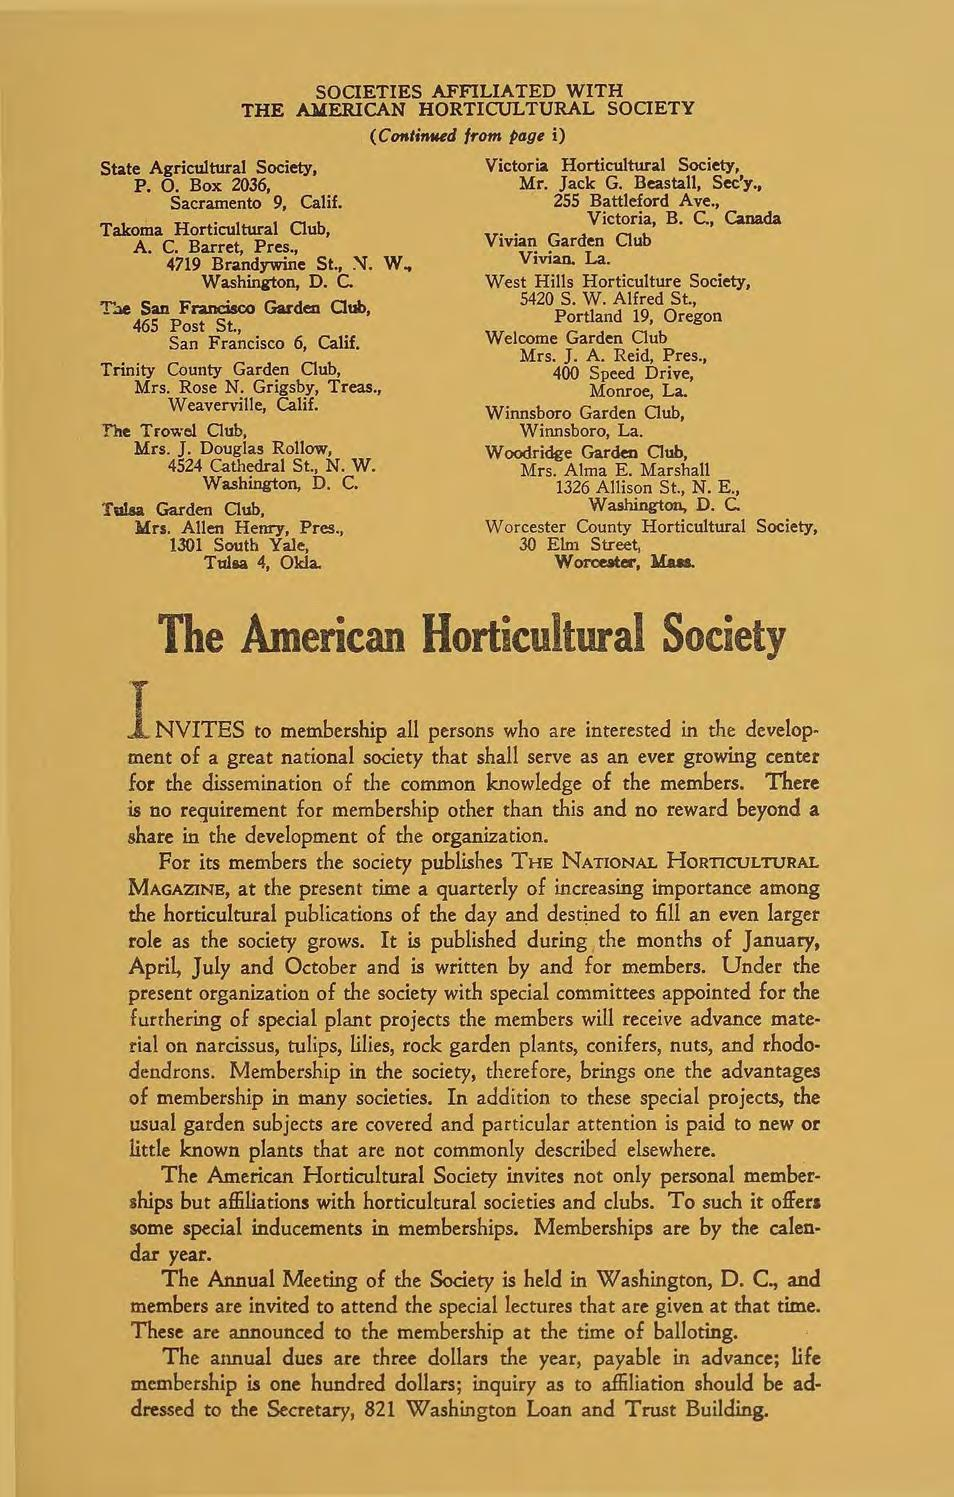 SOCIETIES AFFILIATED WITH THE Al4ERICAN HORTlCUL TURAL SOCIETY (Ctmlinued f,.om page i) State Agricultural Society, P. O. Box 2036, Sacramento 9, Calif. Takoma Horticultural Oub, A. C. Barret, Pres.